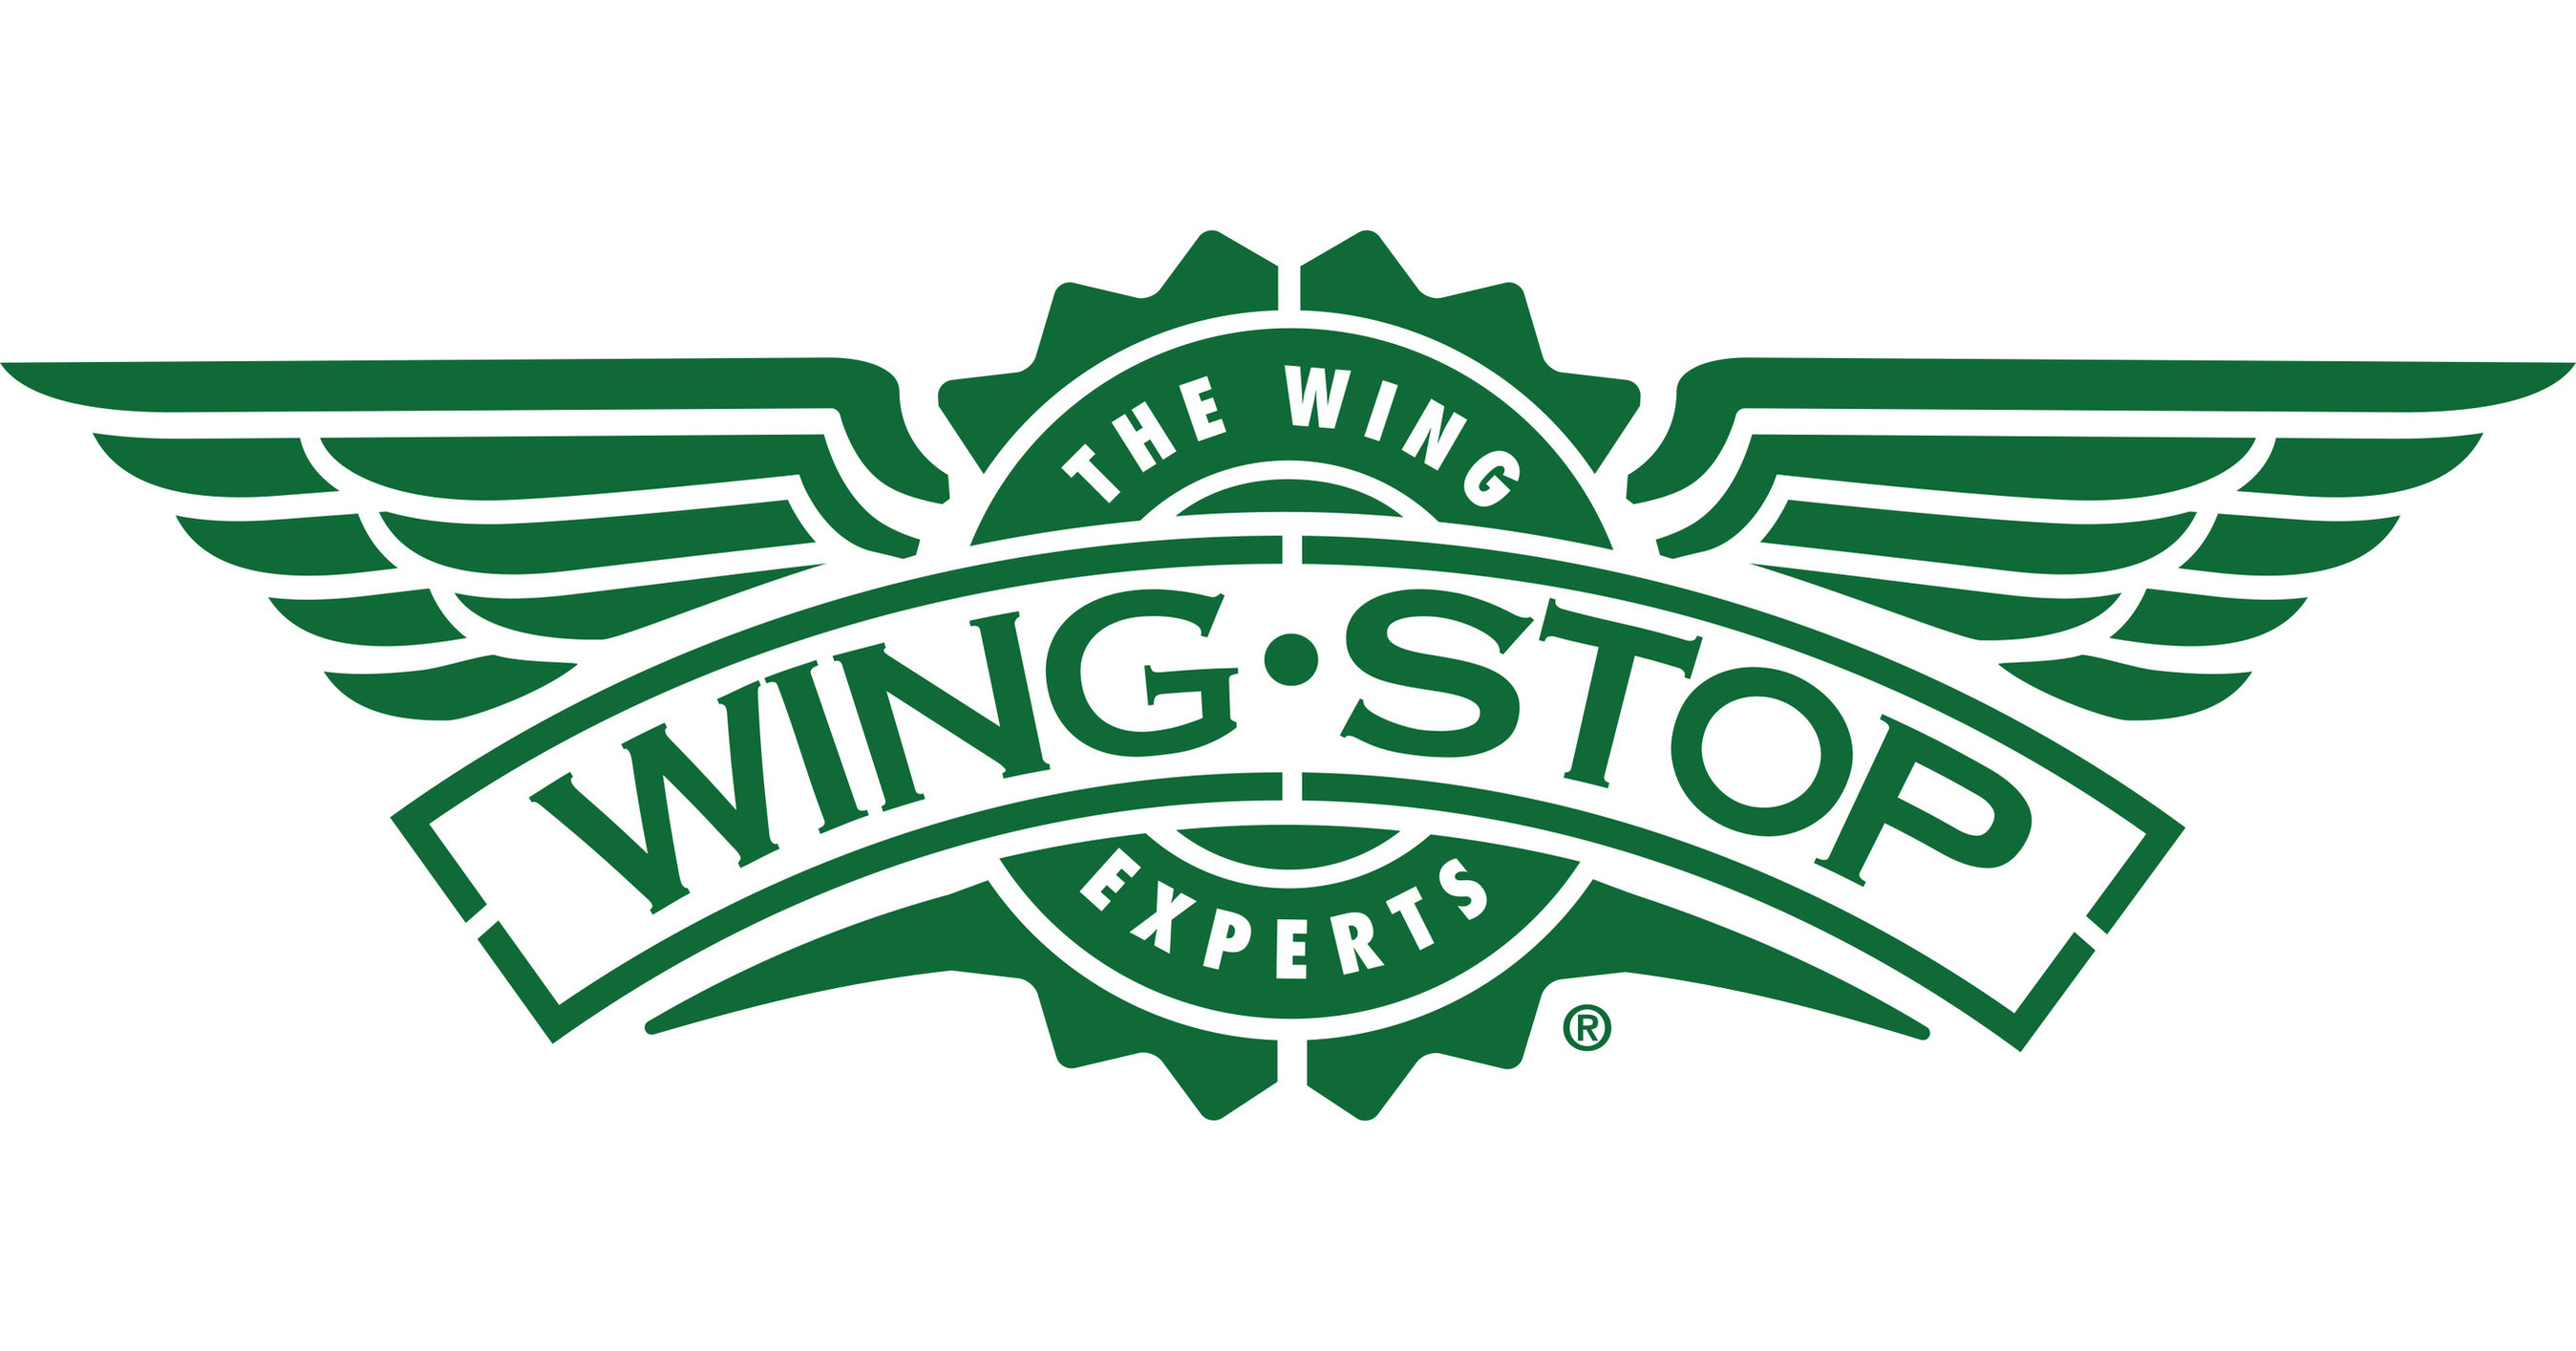 ISO Wings 2Nite, 2Moro Or L8R? NP. Wingstop Expands Digital.